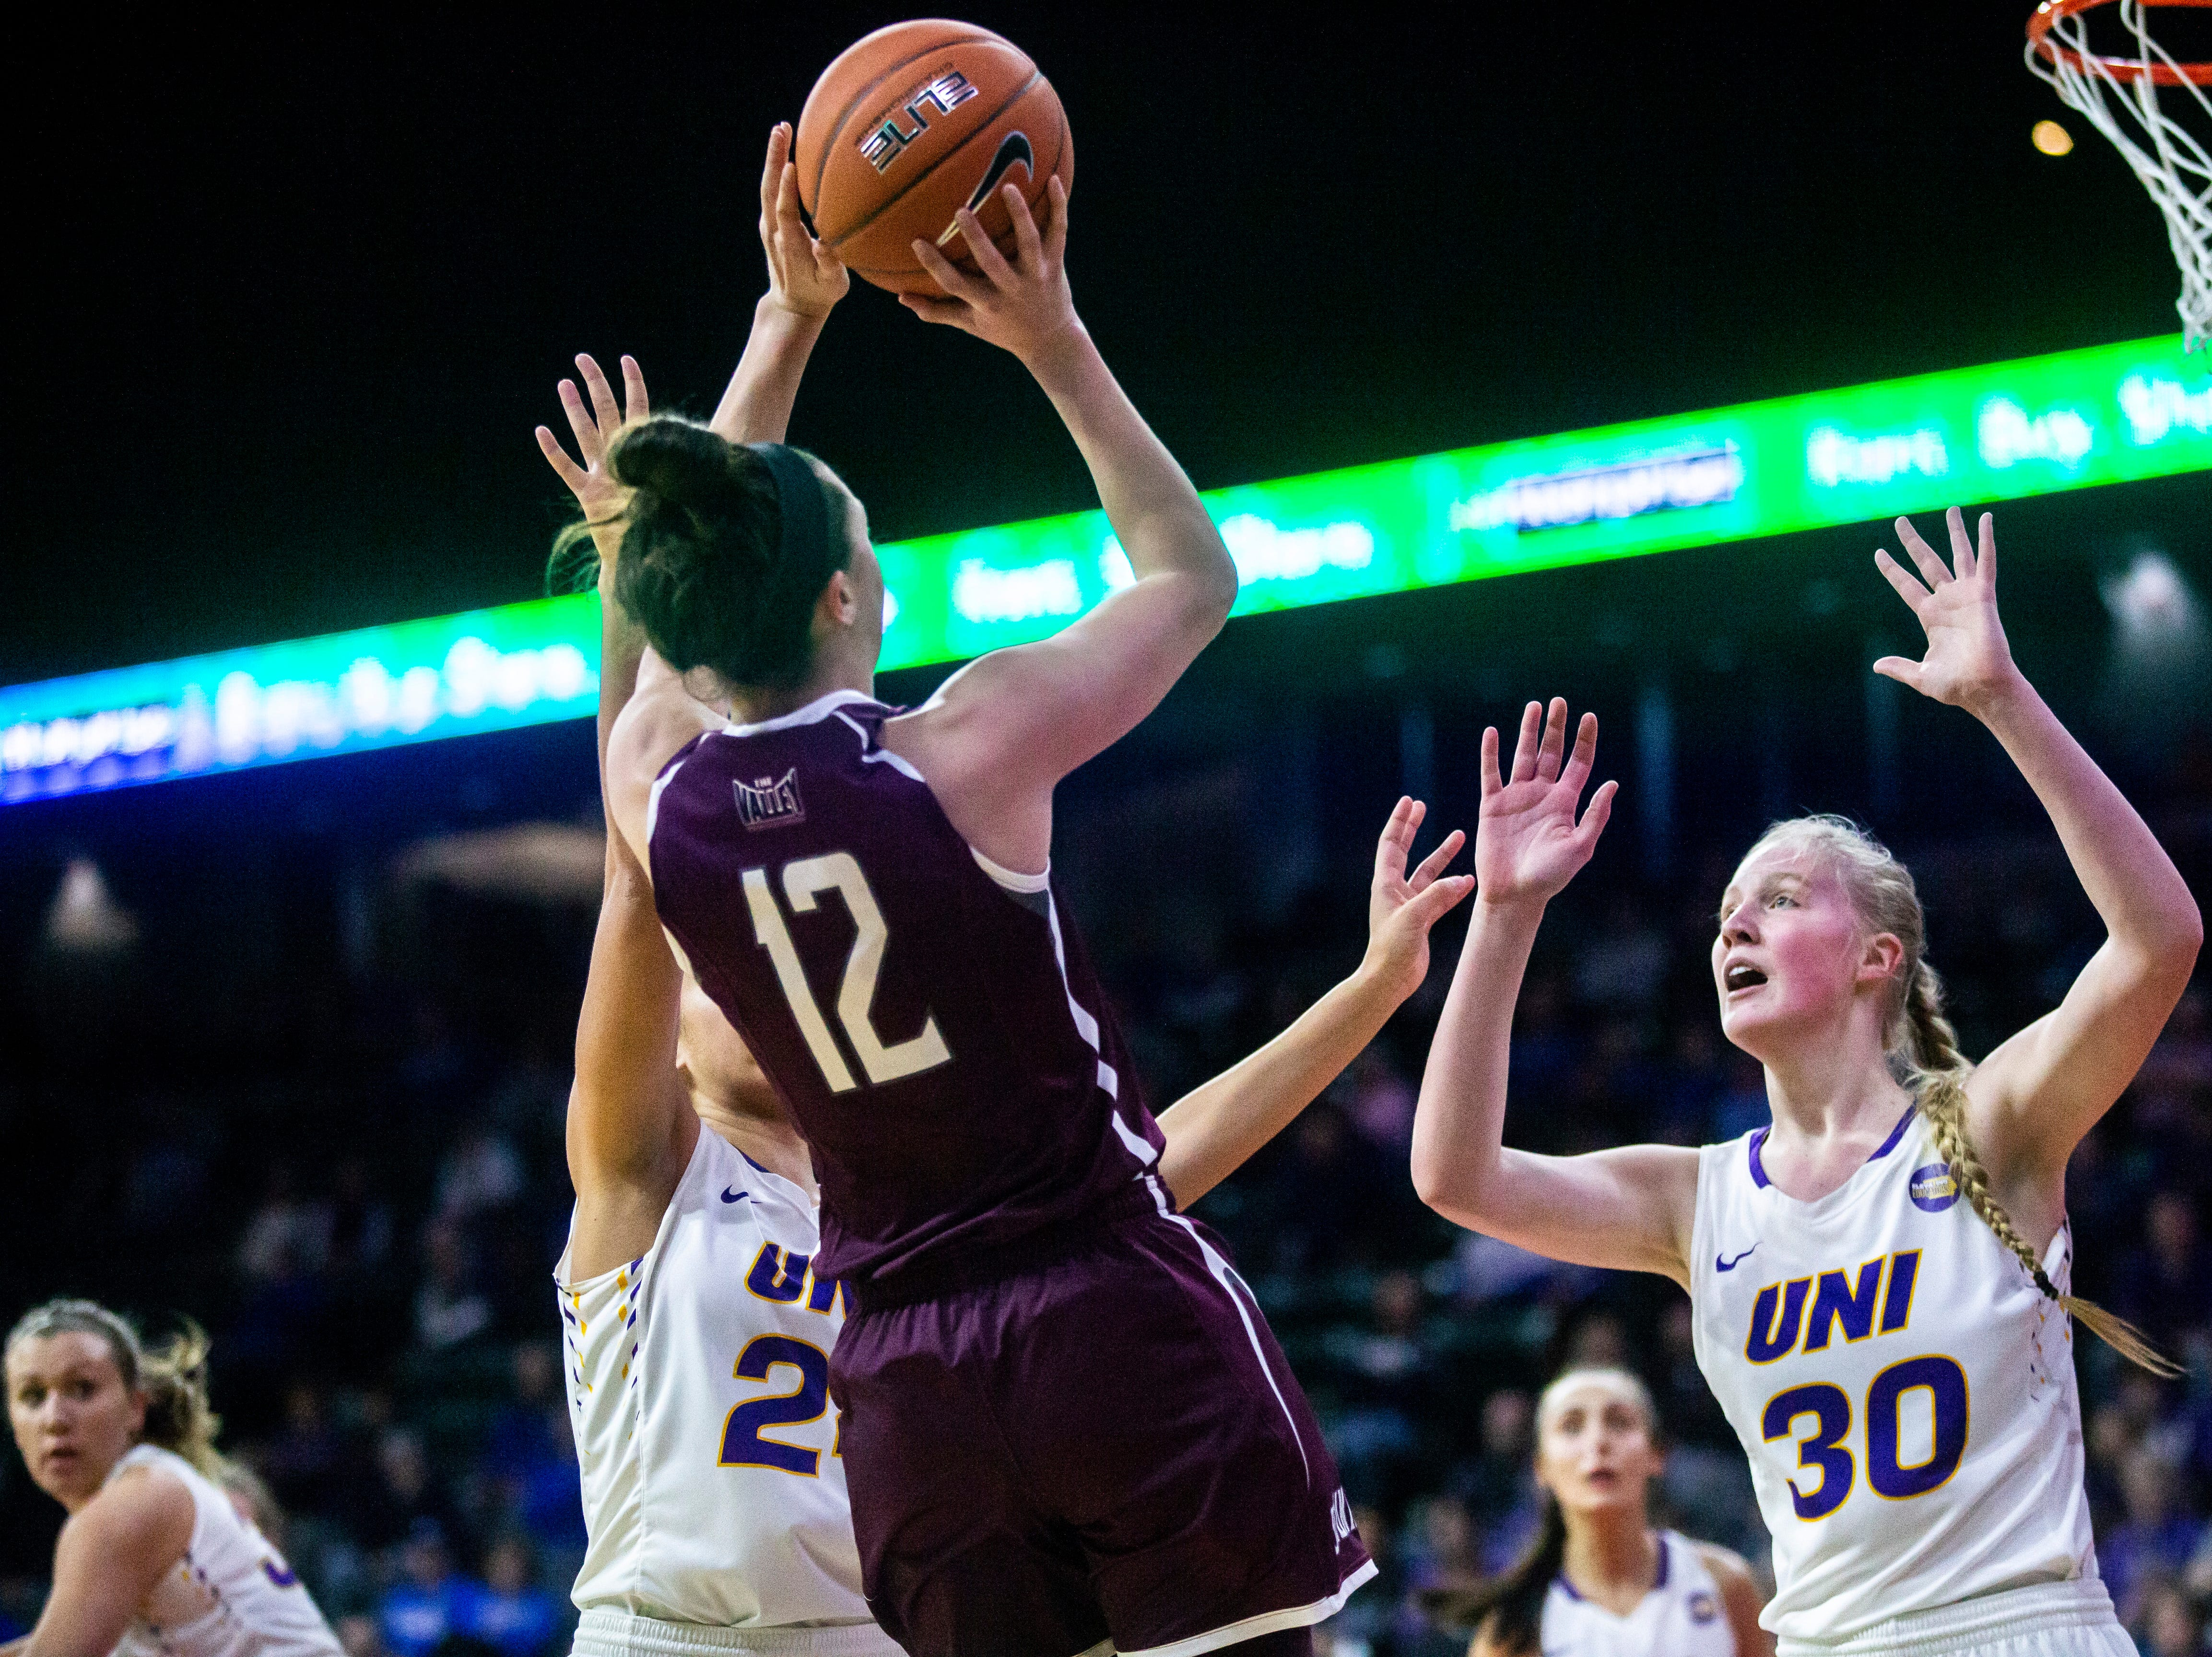 Northern Iowa center Cynthia Wolf (30) and Northern Iowa guard Mikaela Morgan, left, defend Southern Illinois guard Makenzie Silvey (12) during a NCAA Missouri Valley Conference women's basketball quarterfinal tournament game, Friday, March 15, 2019, at the TaxSlayer Center in Moline, Illinois.